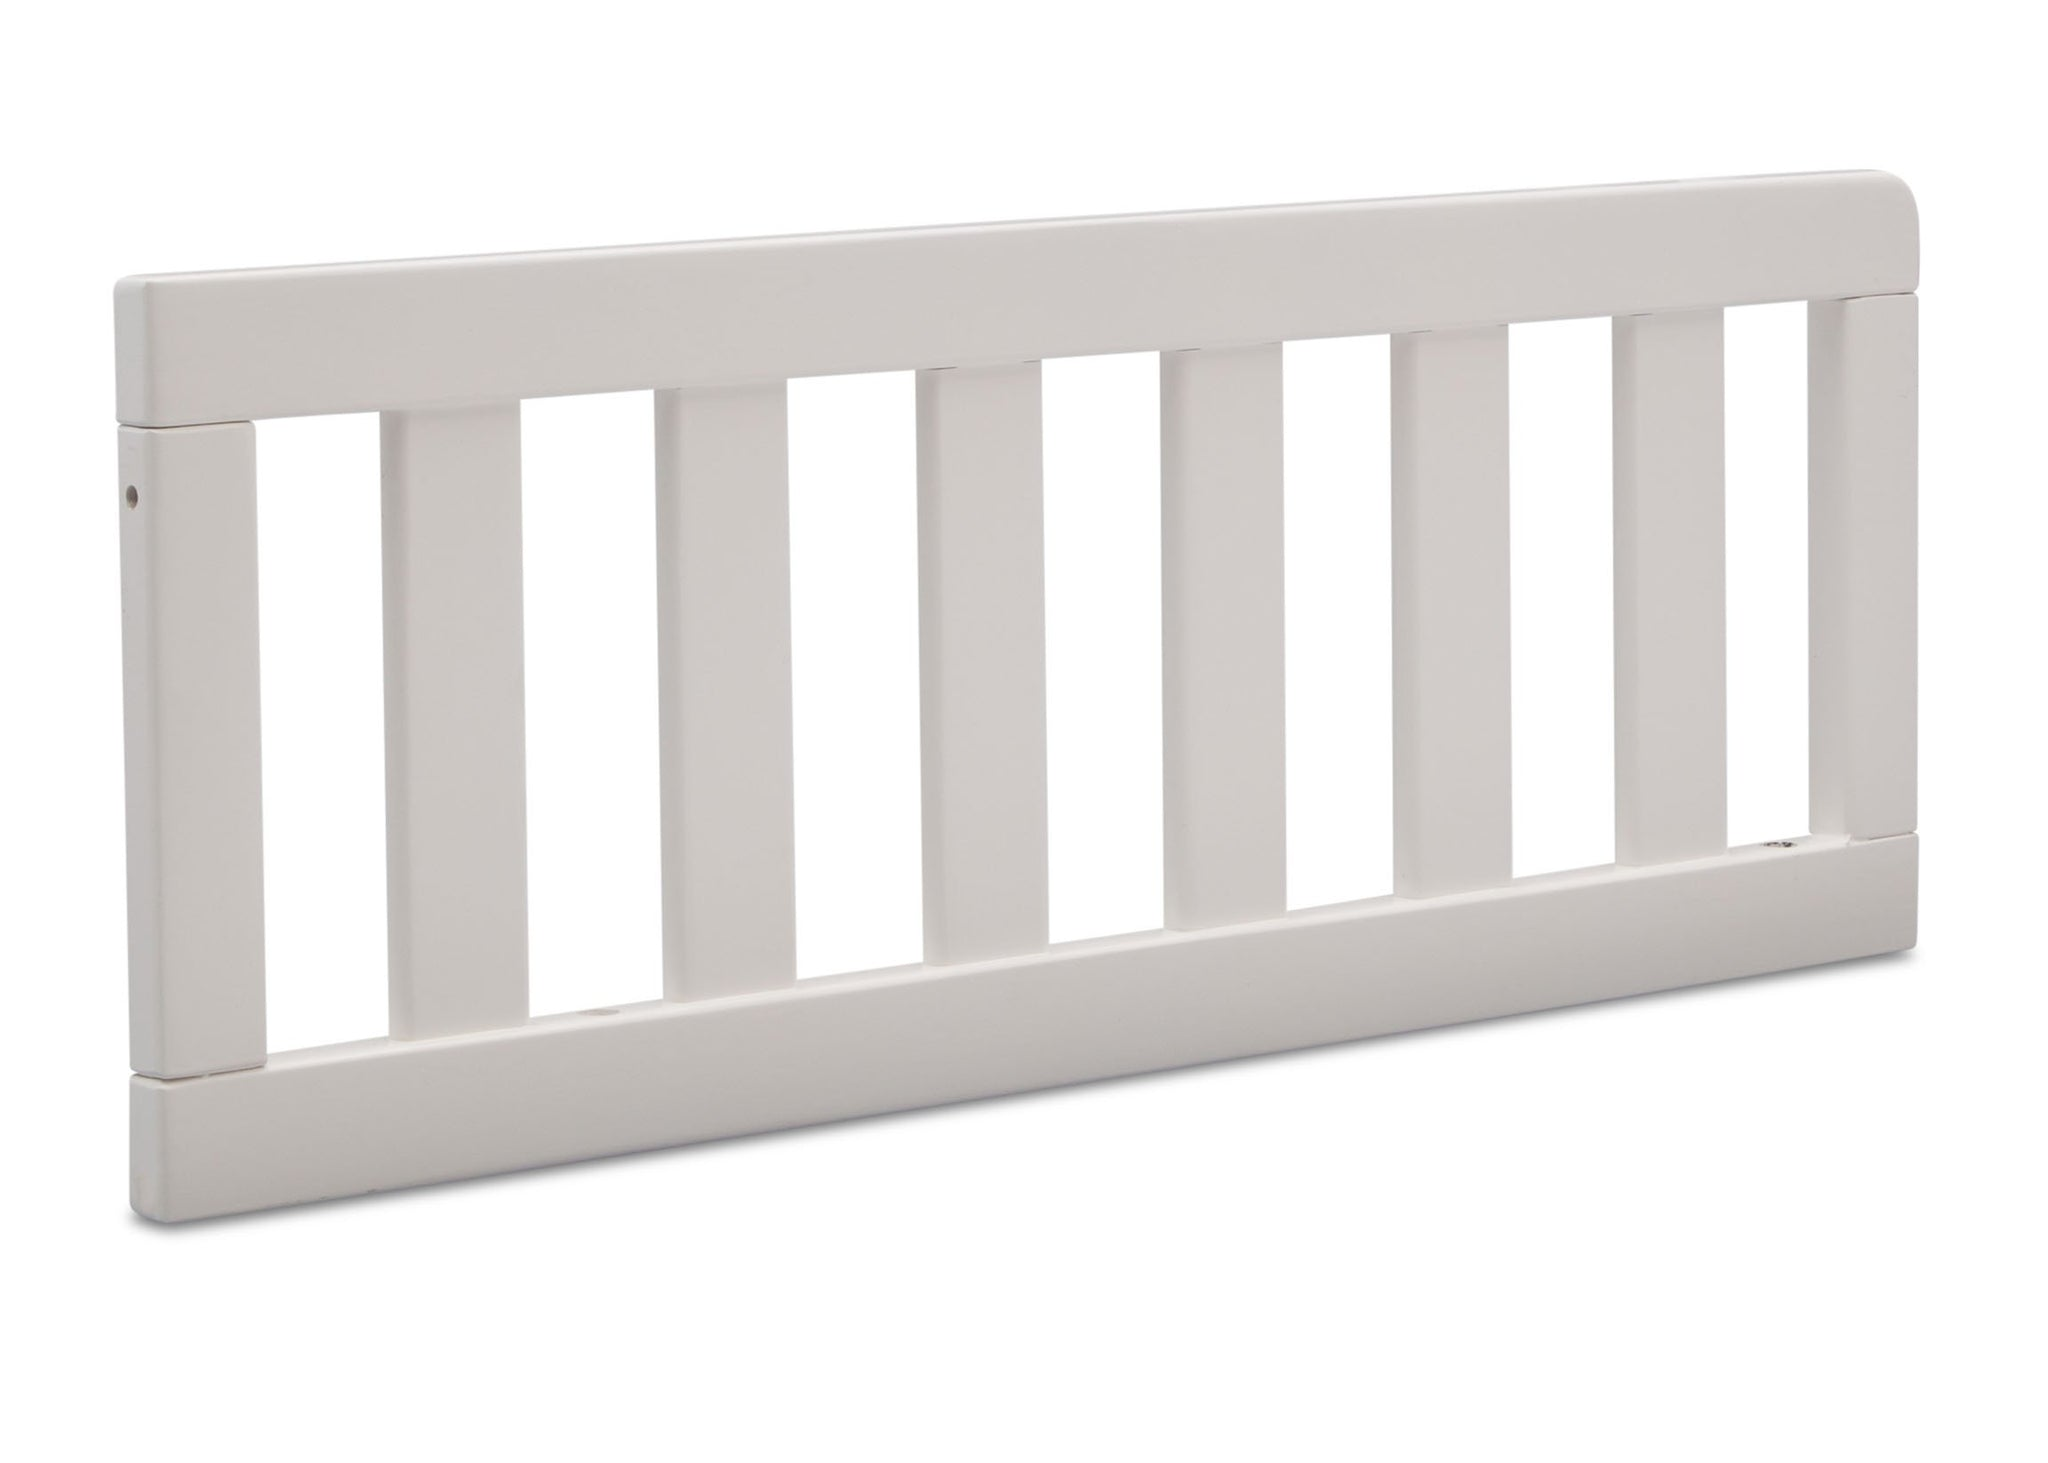 Delta Children Bianca (130) Daybed/Toddler Guardrail Kit (553725), Right Angle Guardrail, b4b